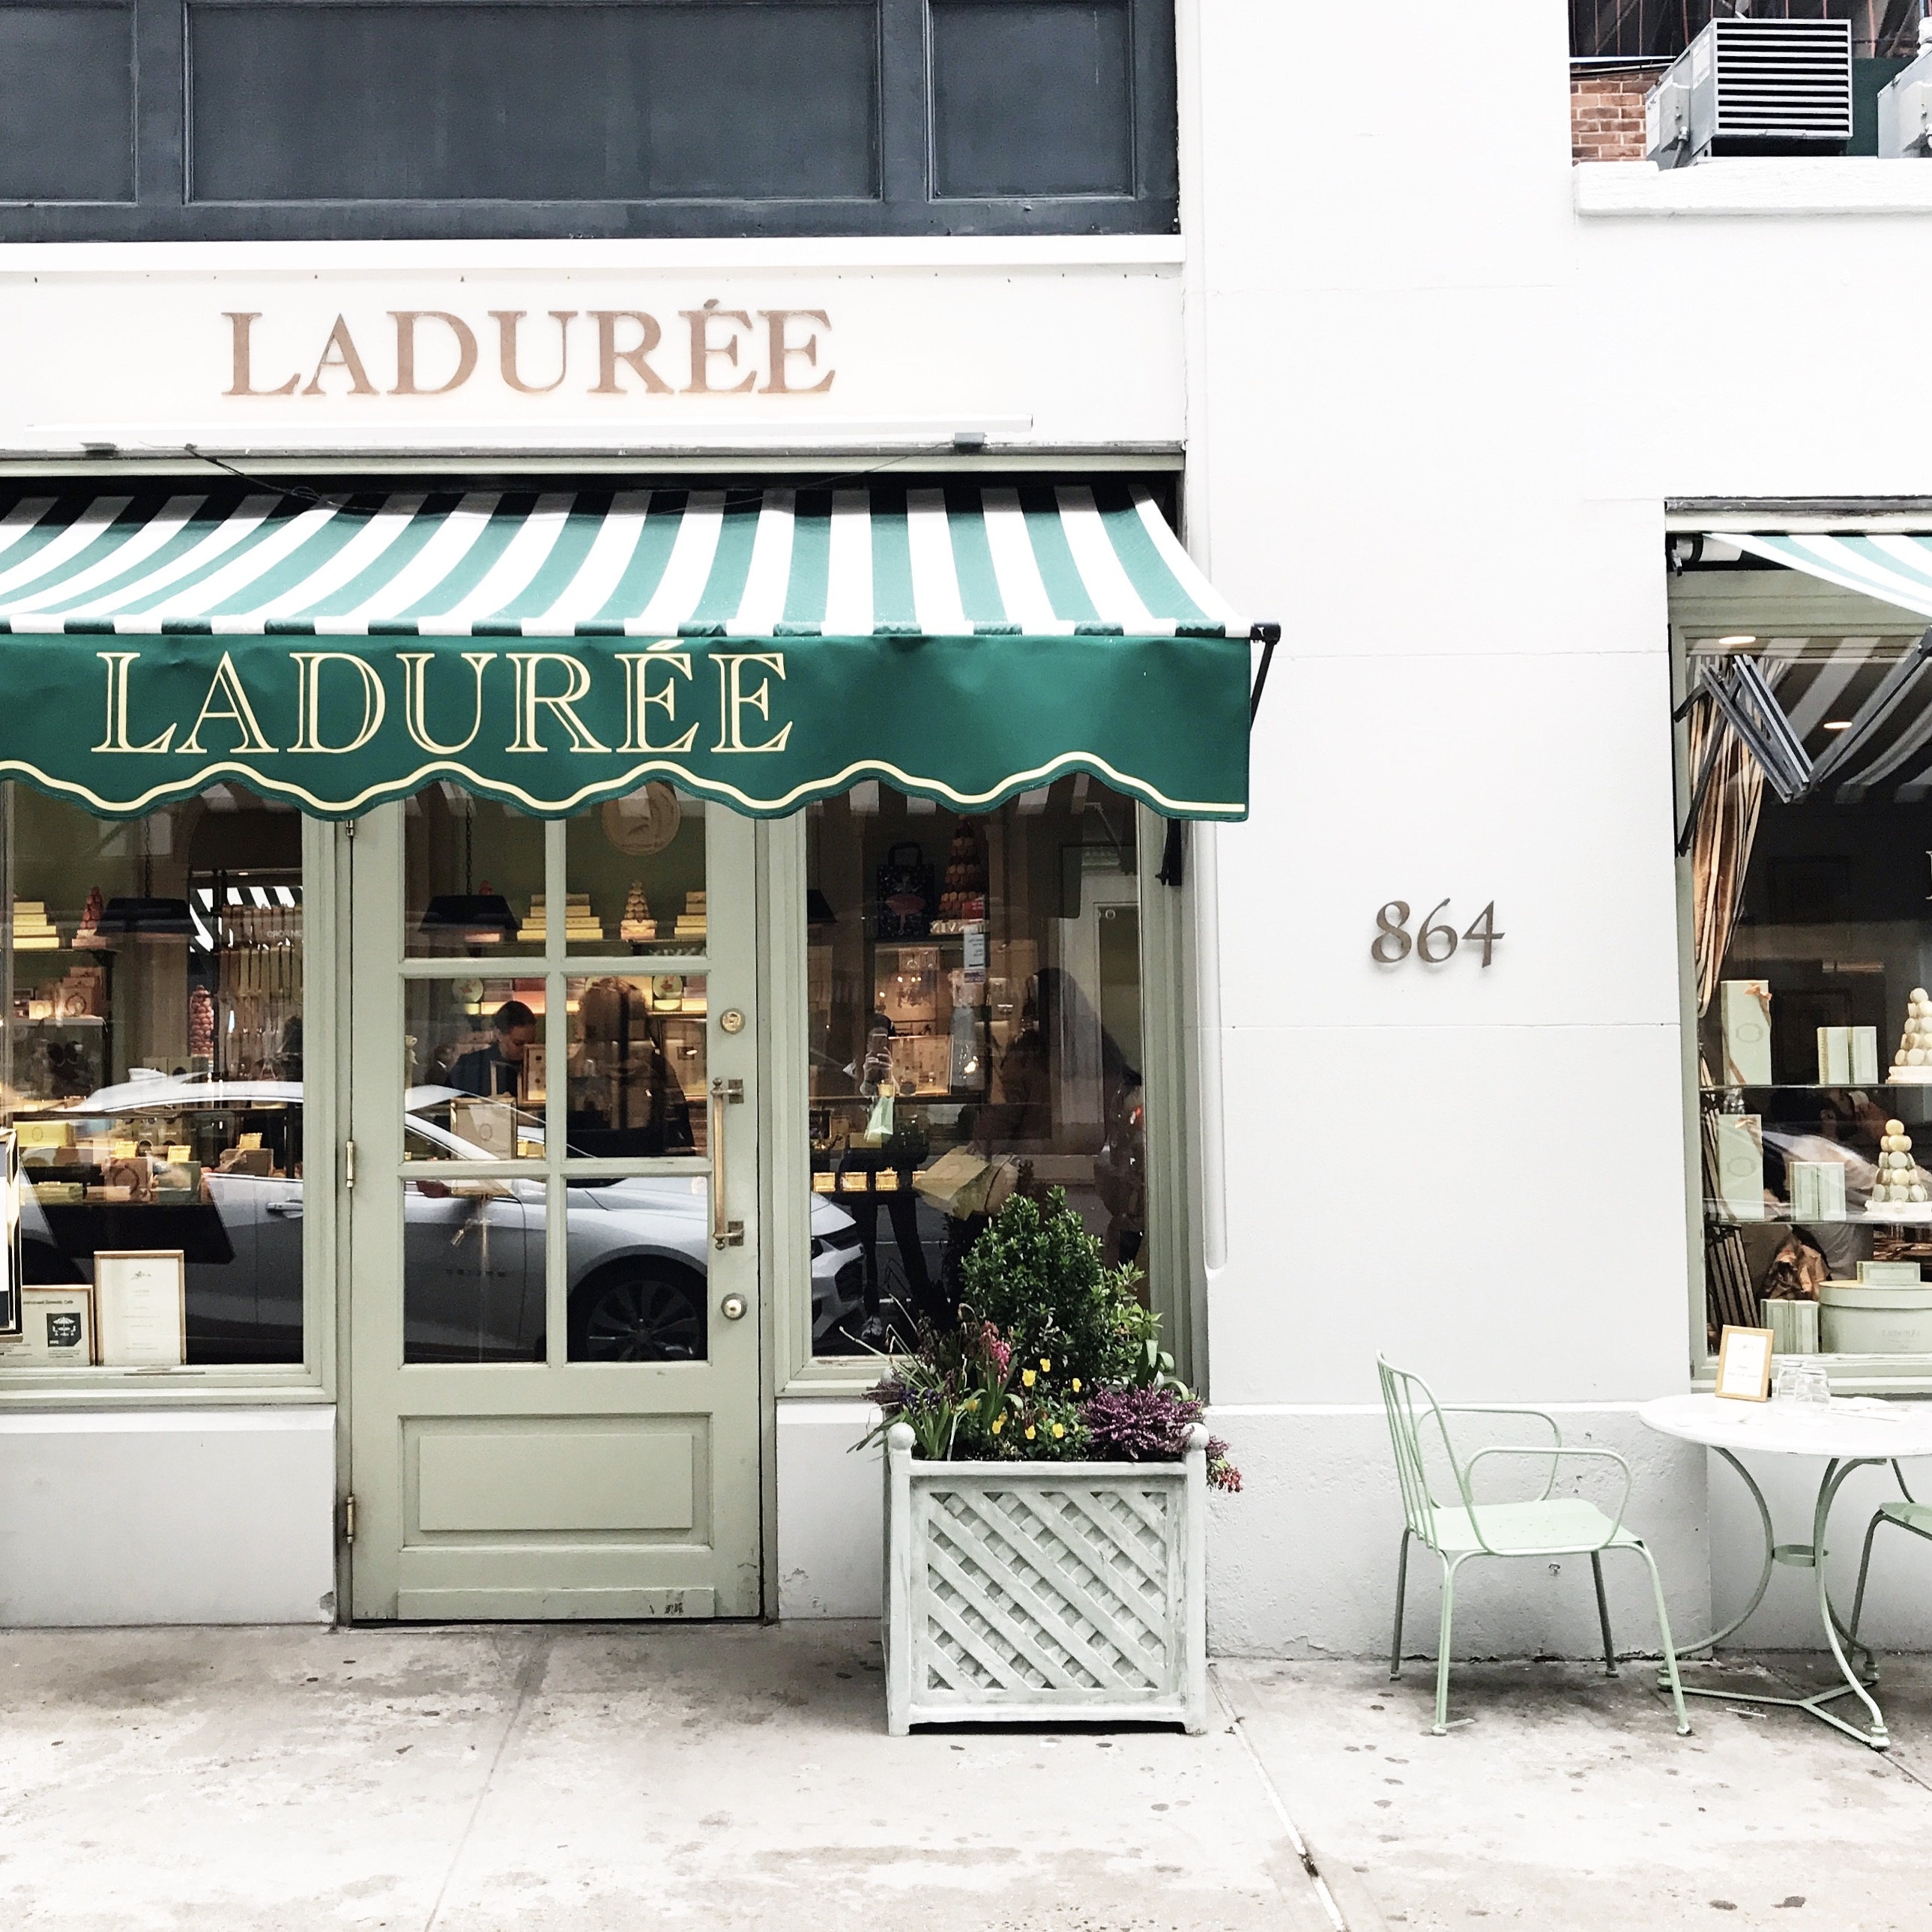 Laduree best desserts on the Upper East Side